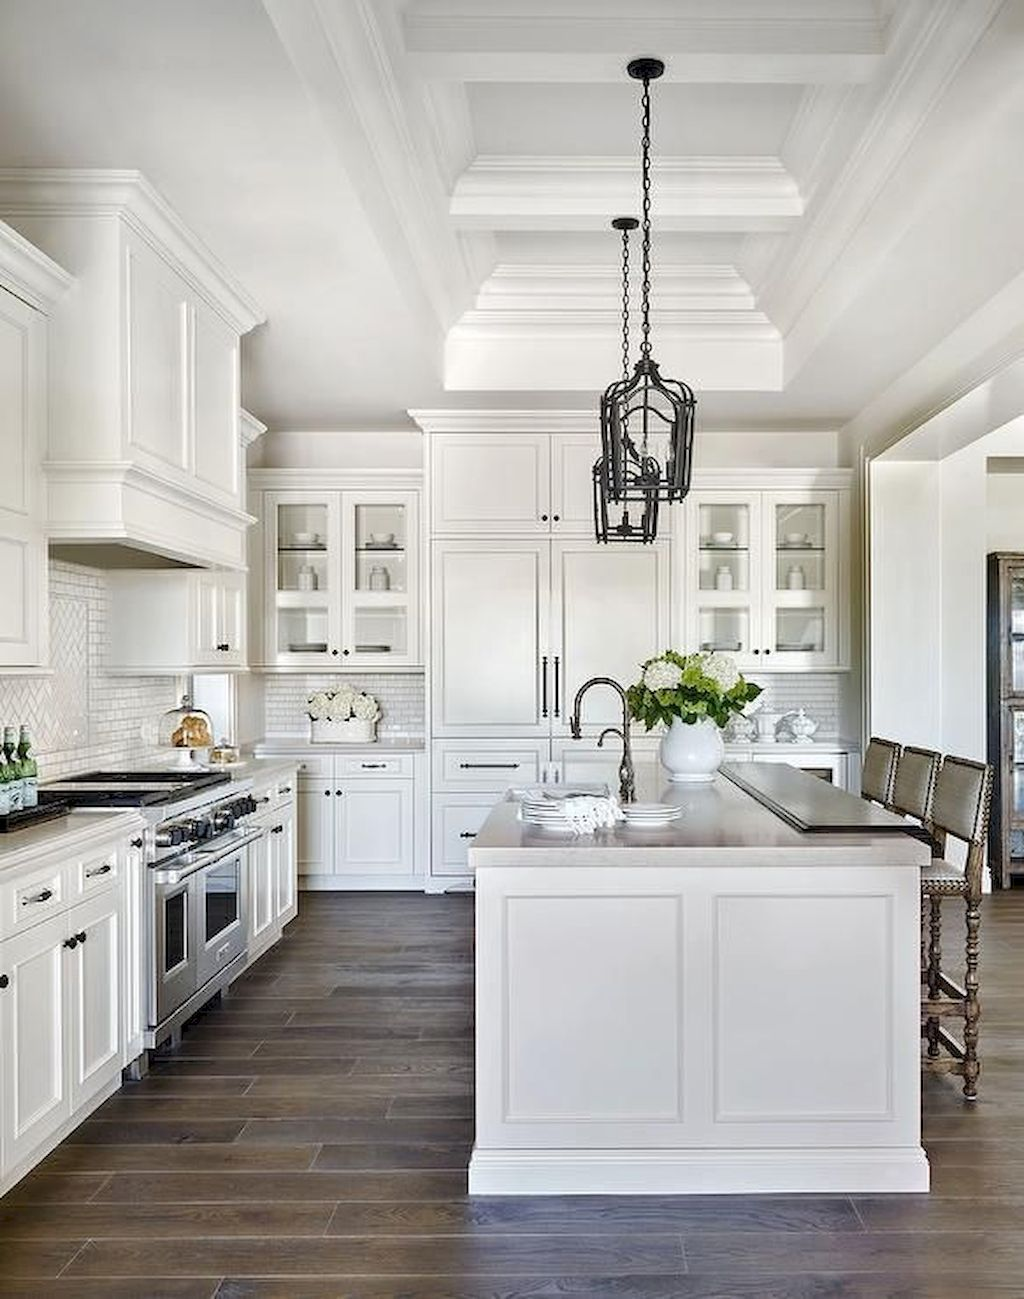 Beautiful White Kitchen Cabinet Decor Ideas (51